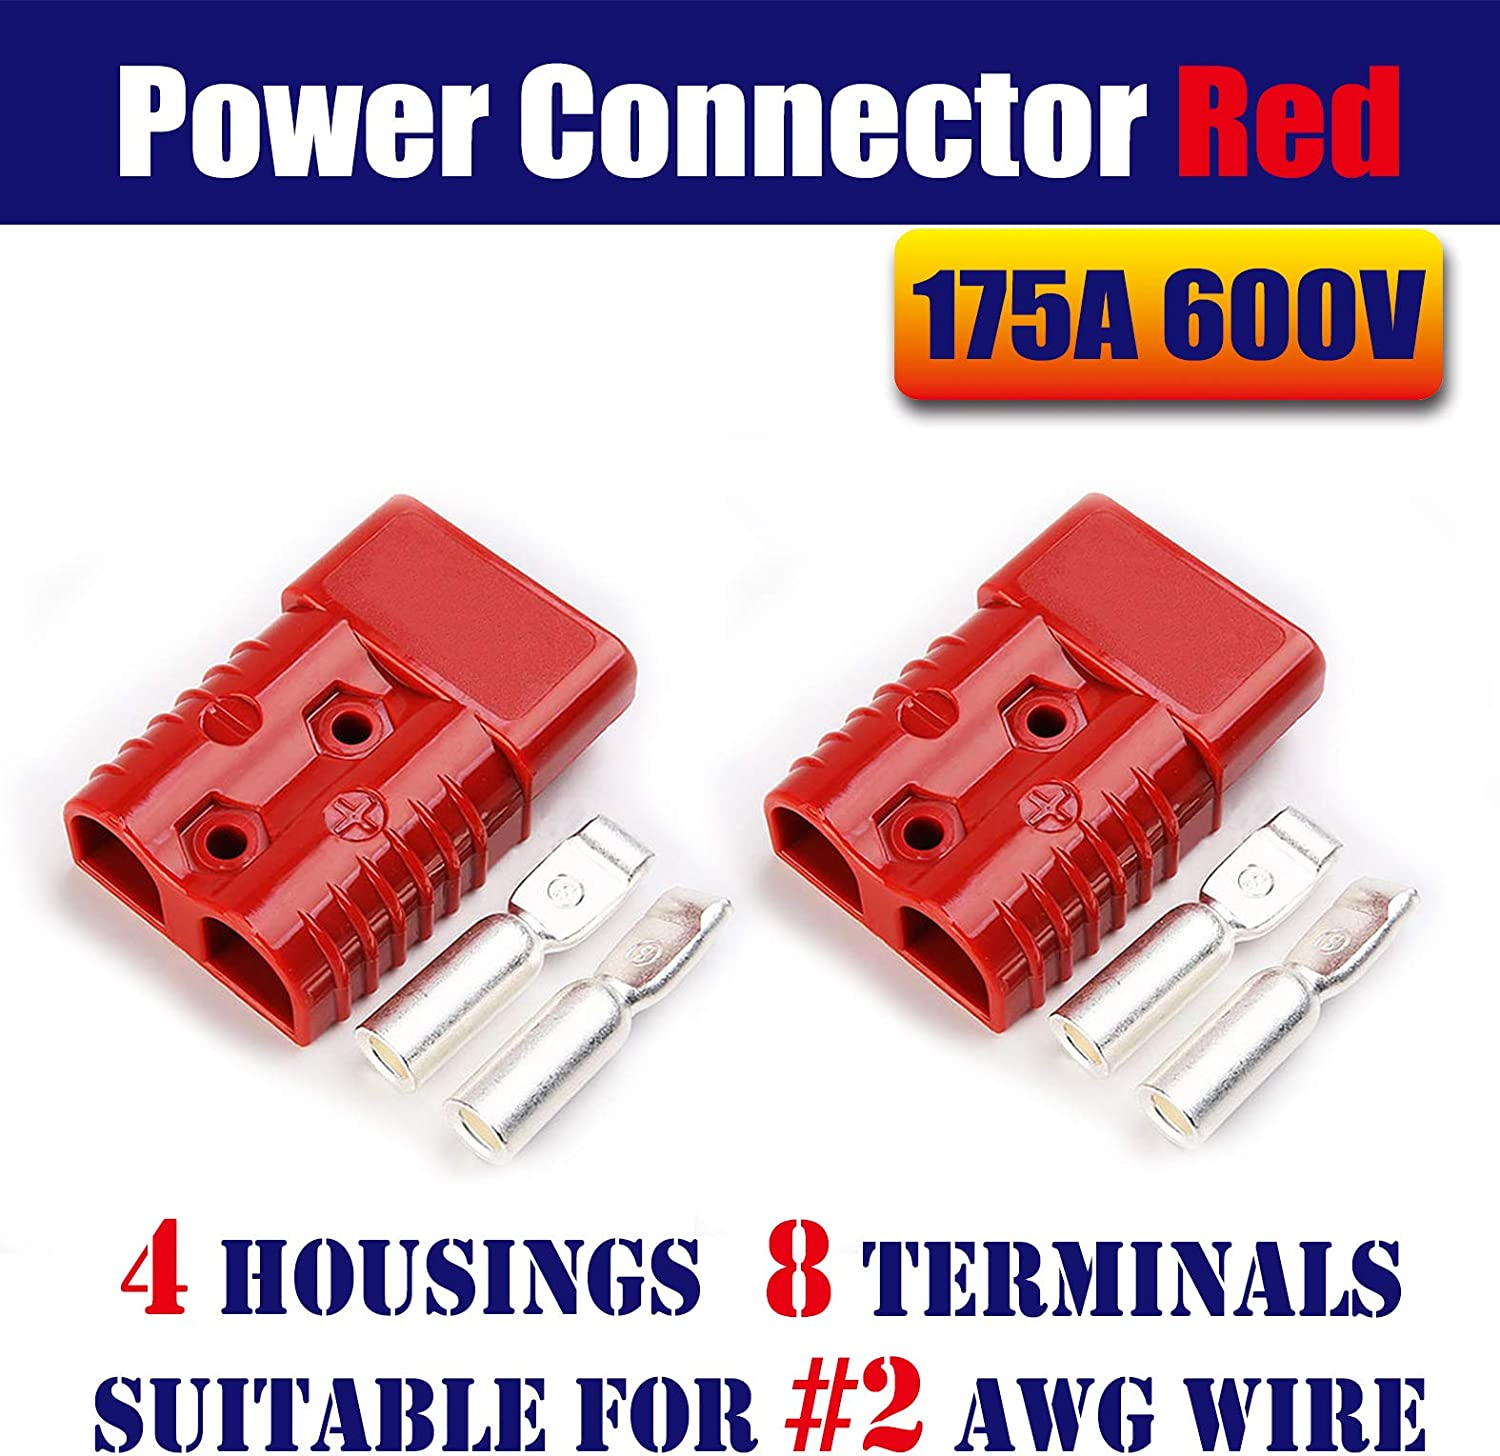 Mr.Brighton LED 175Amp Anderson Compatible Power Connecto Luxury goods Pole 2 Special sale item